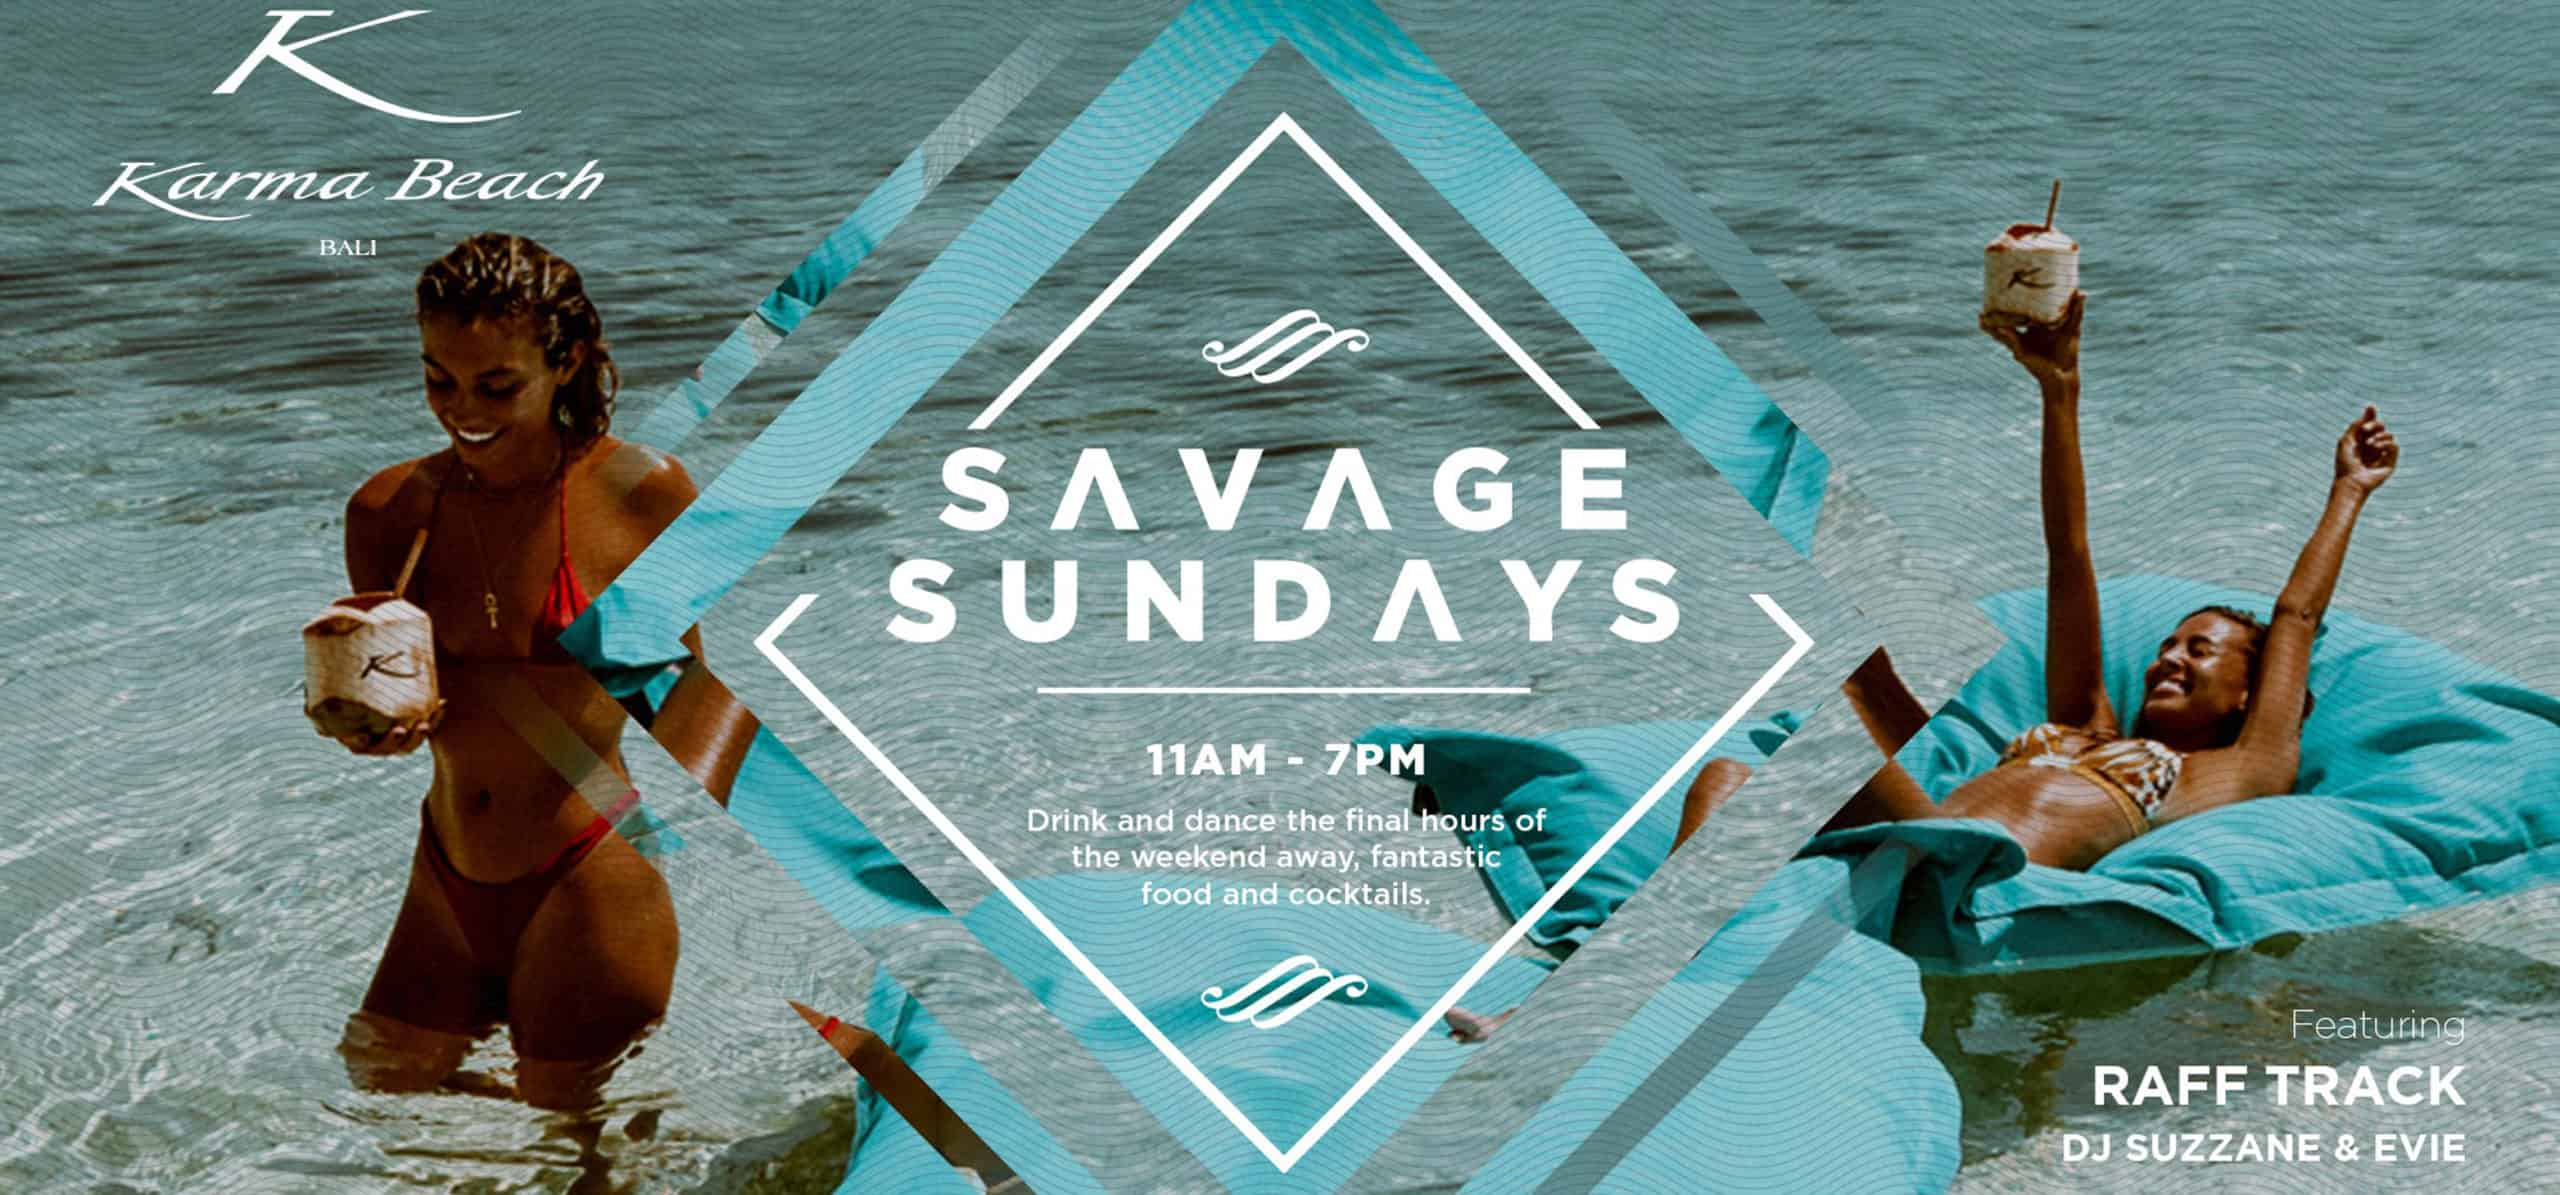 SAVAGE SUNDAYS